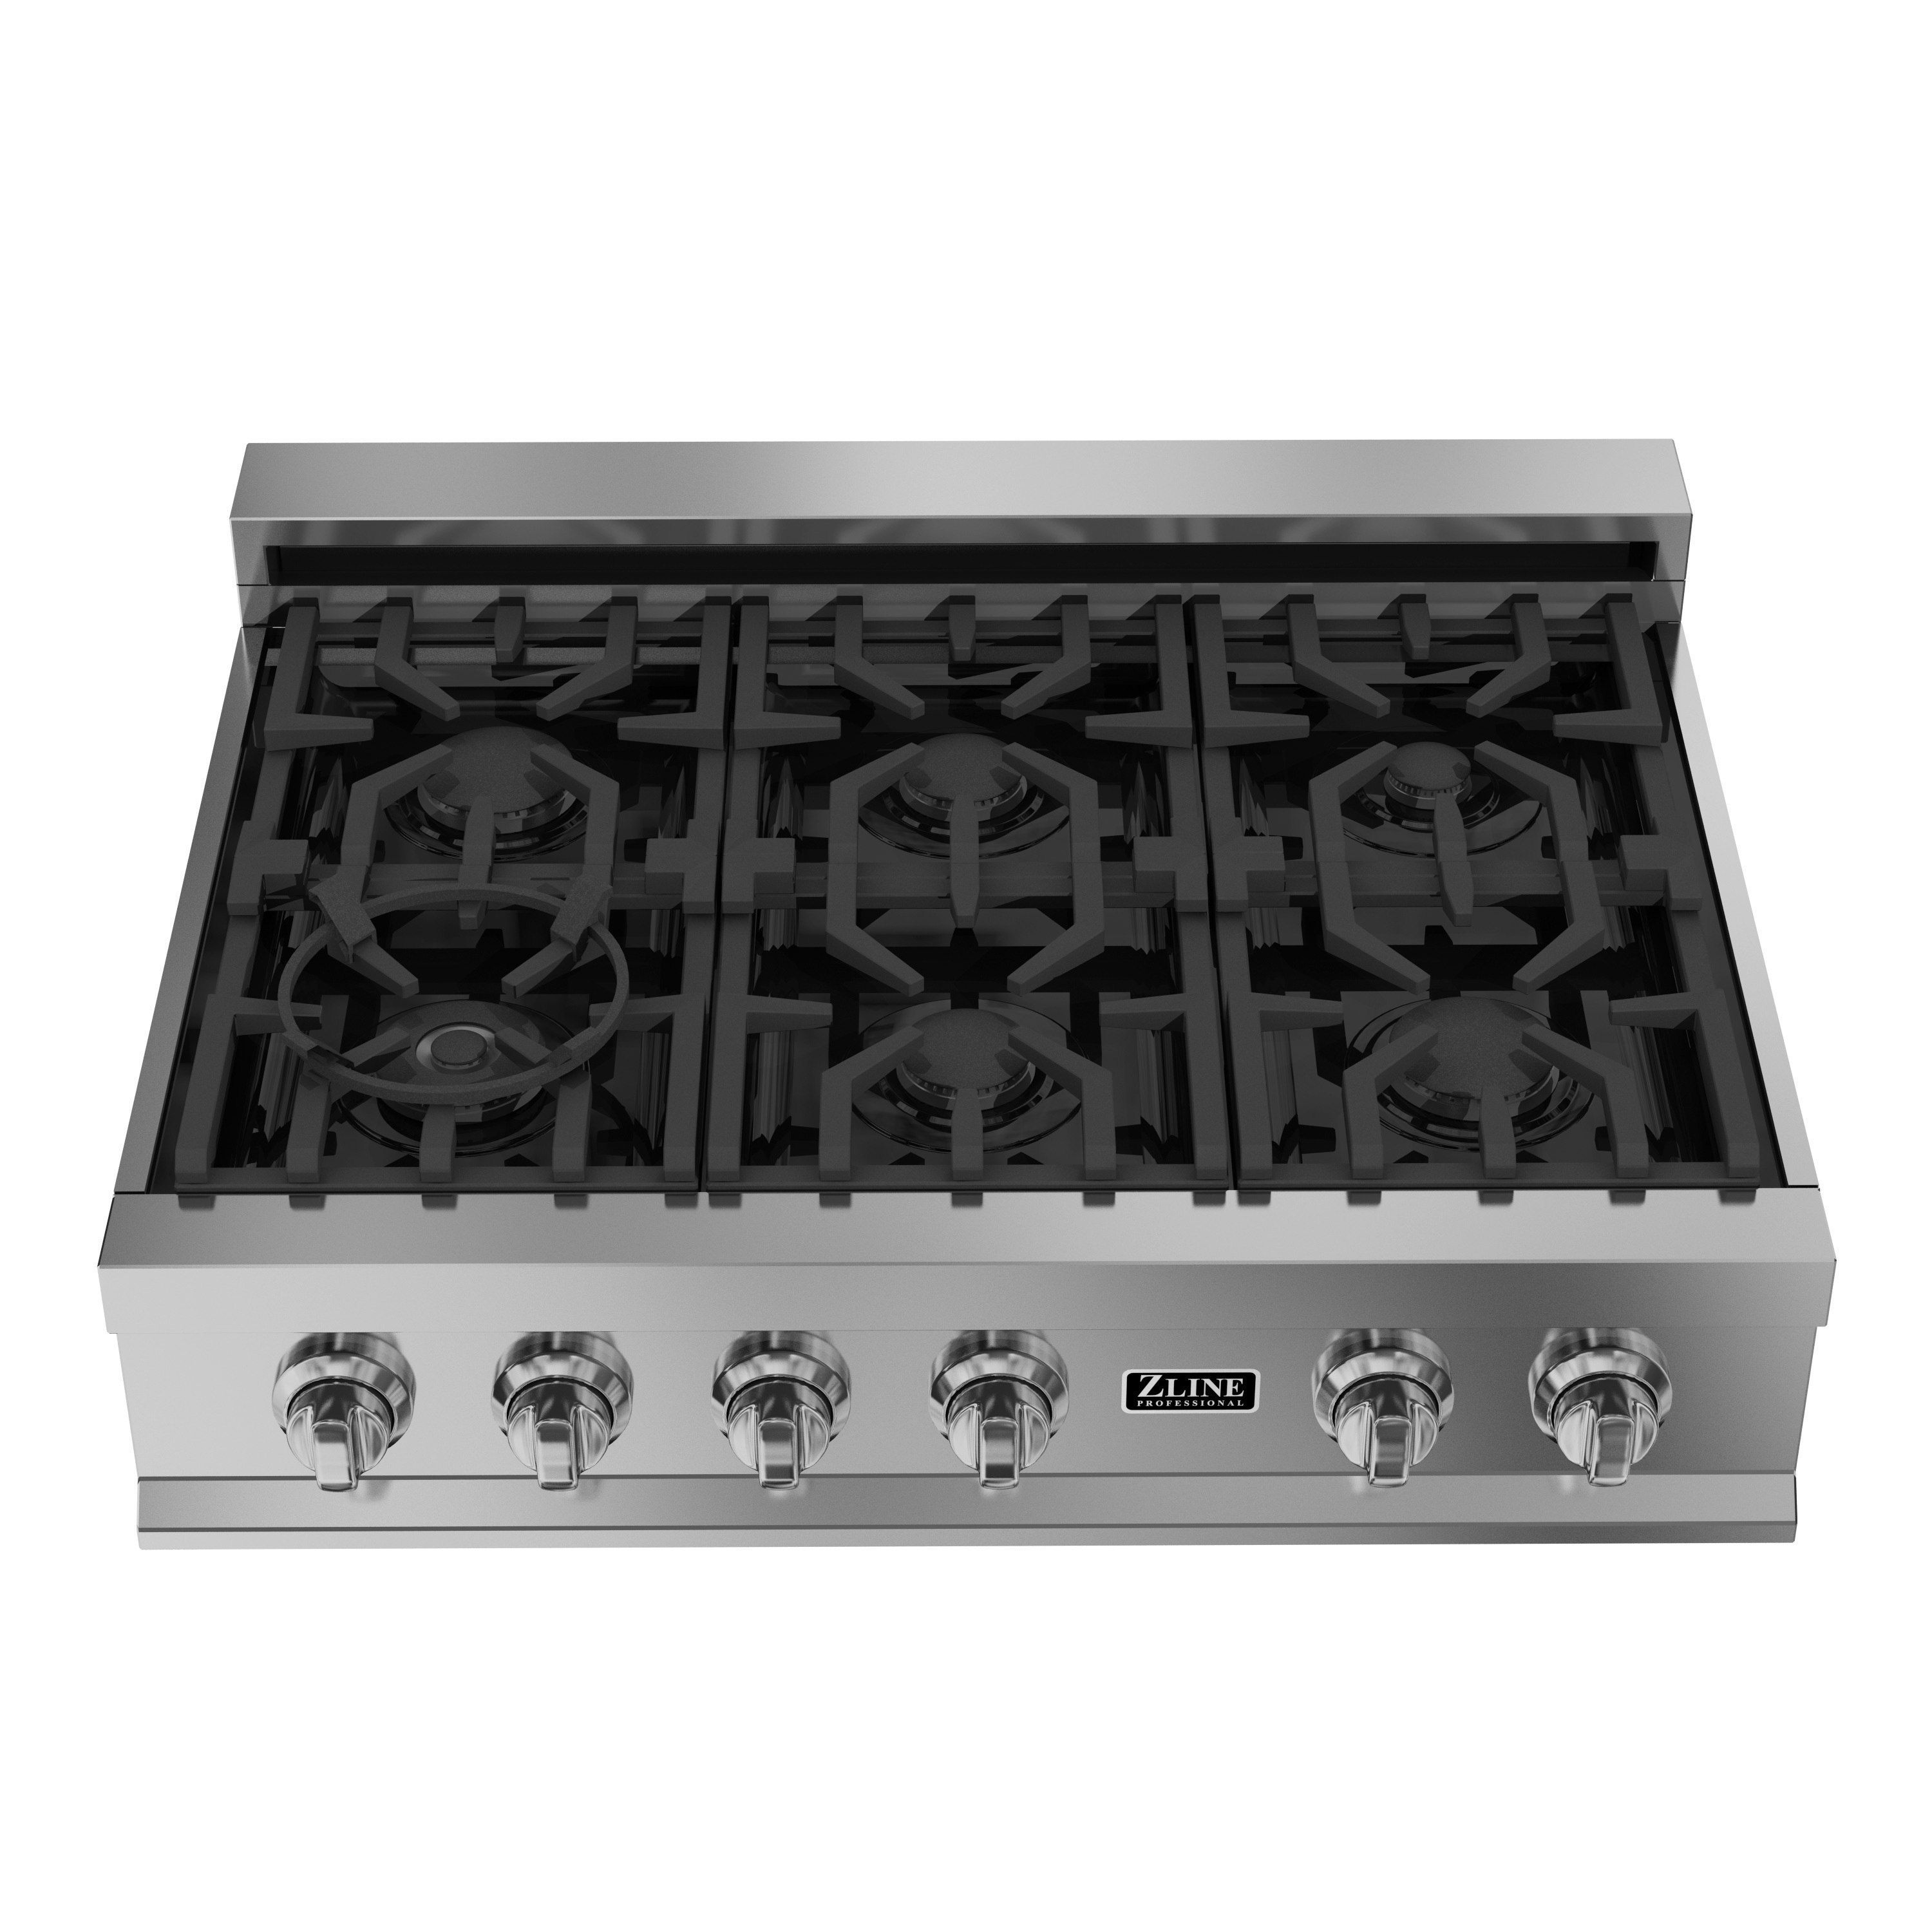 Zline 36 in. Ceramic Rangetop with 6 Gas Burners (RT36), Black ...